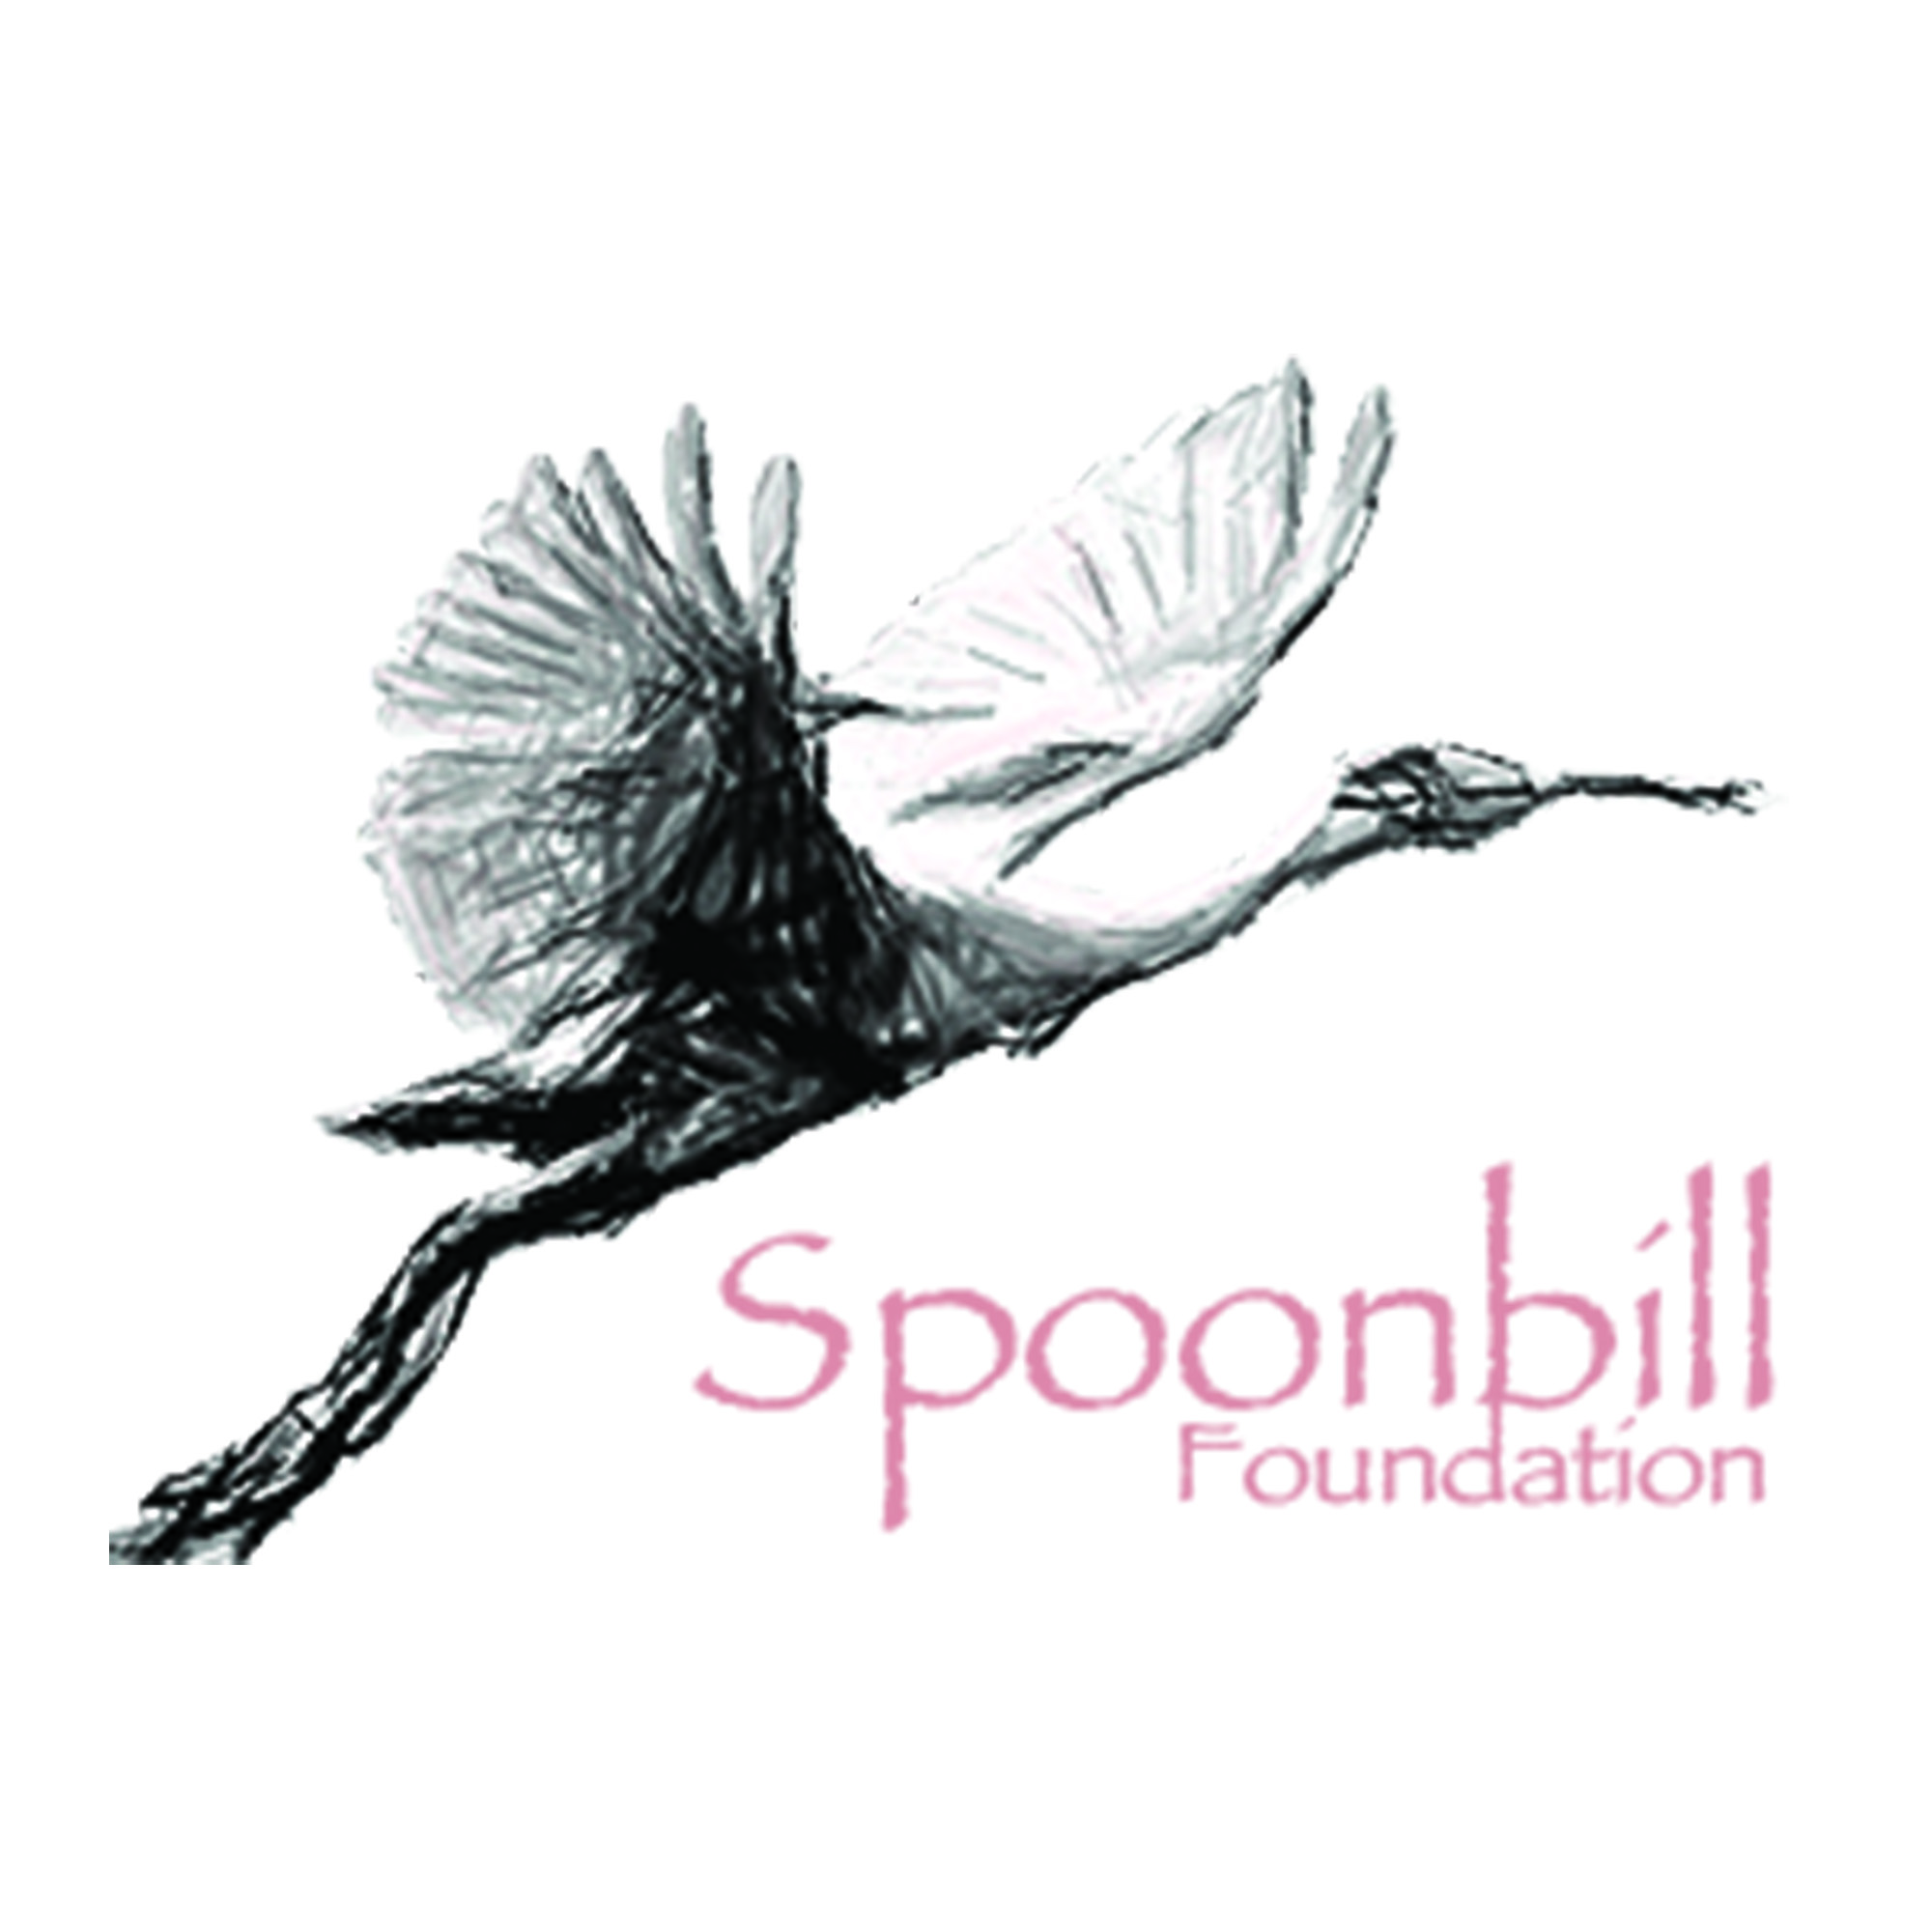 Spoonbill Foundation logo